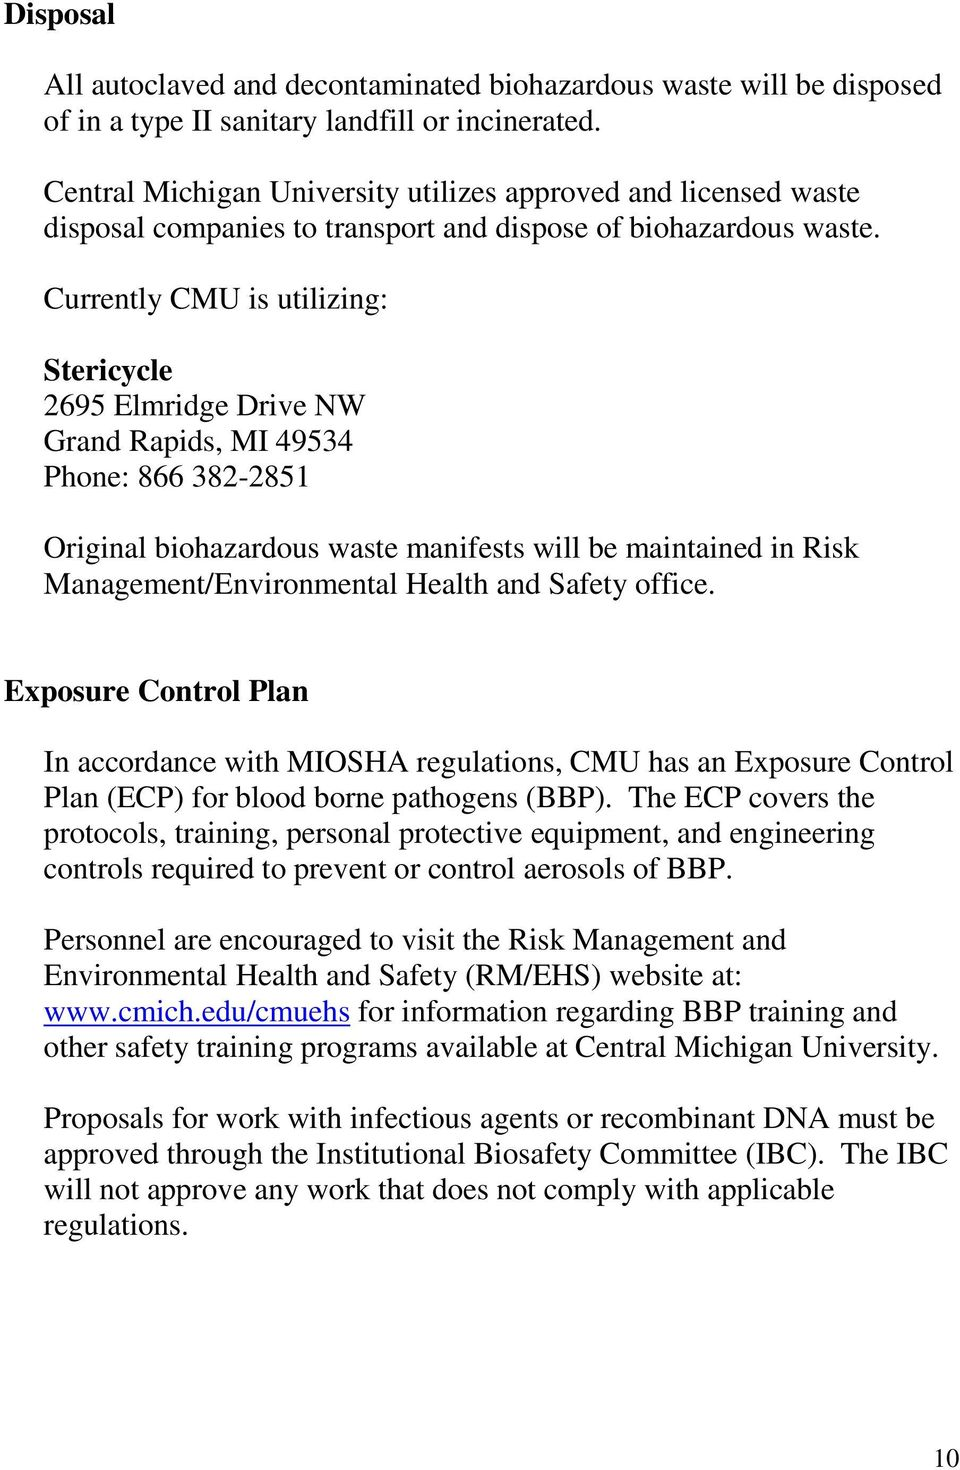 Currently CMU is utilizing: Stericycle 2695 Elmridge Drive NW Grand Rapids, MI 49534 Phone: 866 382-2851 Original biohazardous waste manifests will be maintained in Risk Management/Environmental